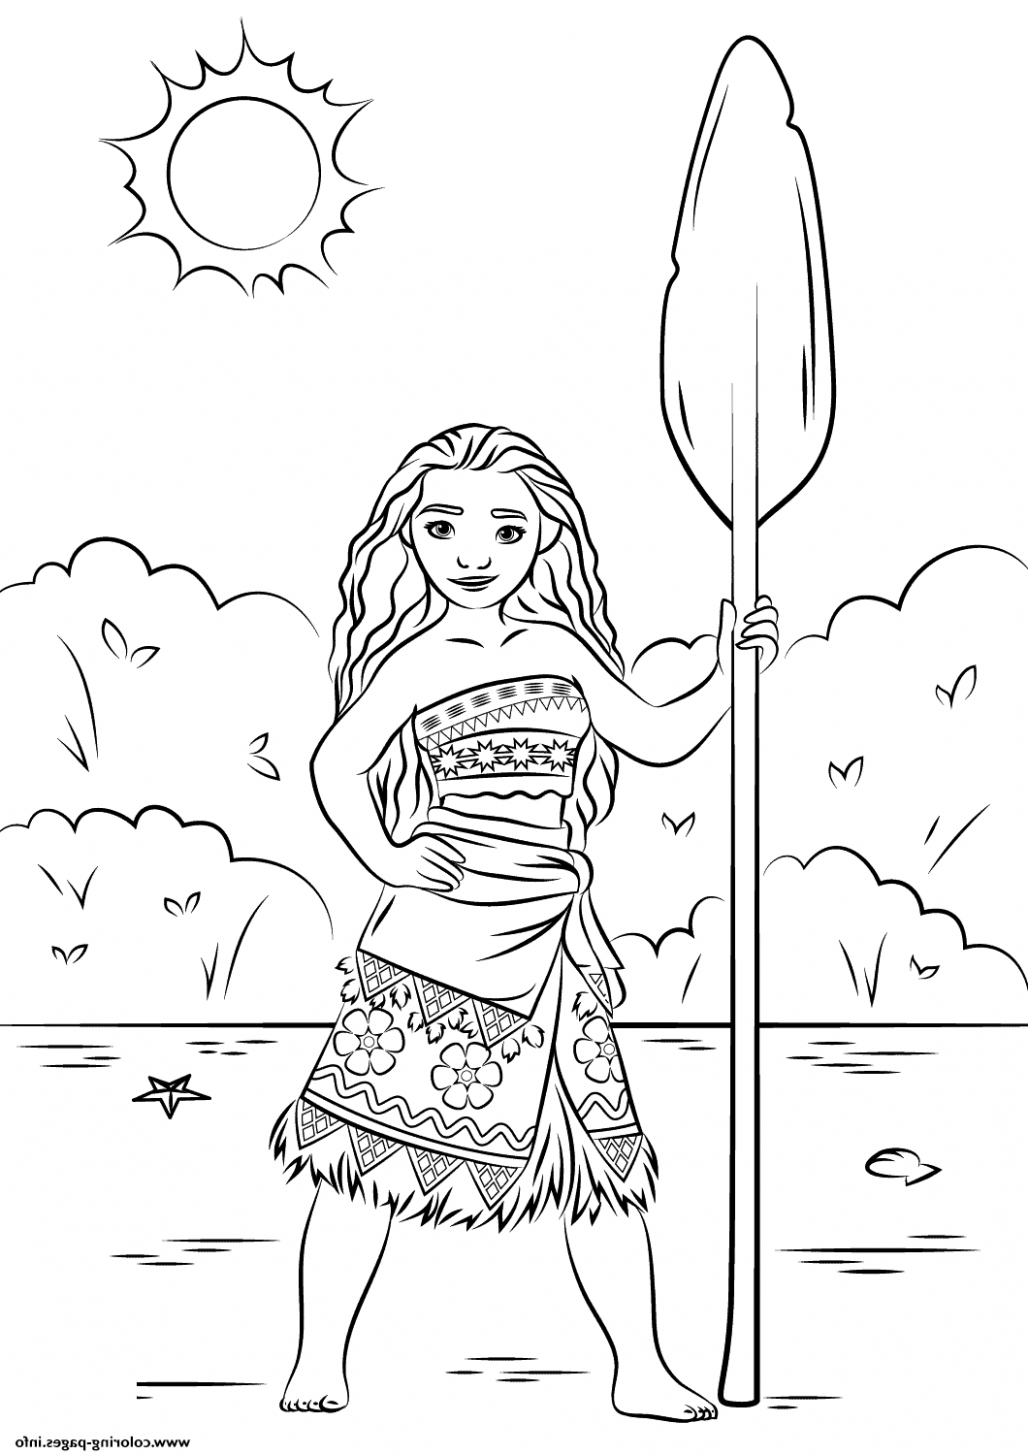 Five Lessons Ive Learned From Coloring Pages Disney Princess Moana Coloring Moana Coloring Pages Disney Coloring Pages Printables Princess Coloring Pages